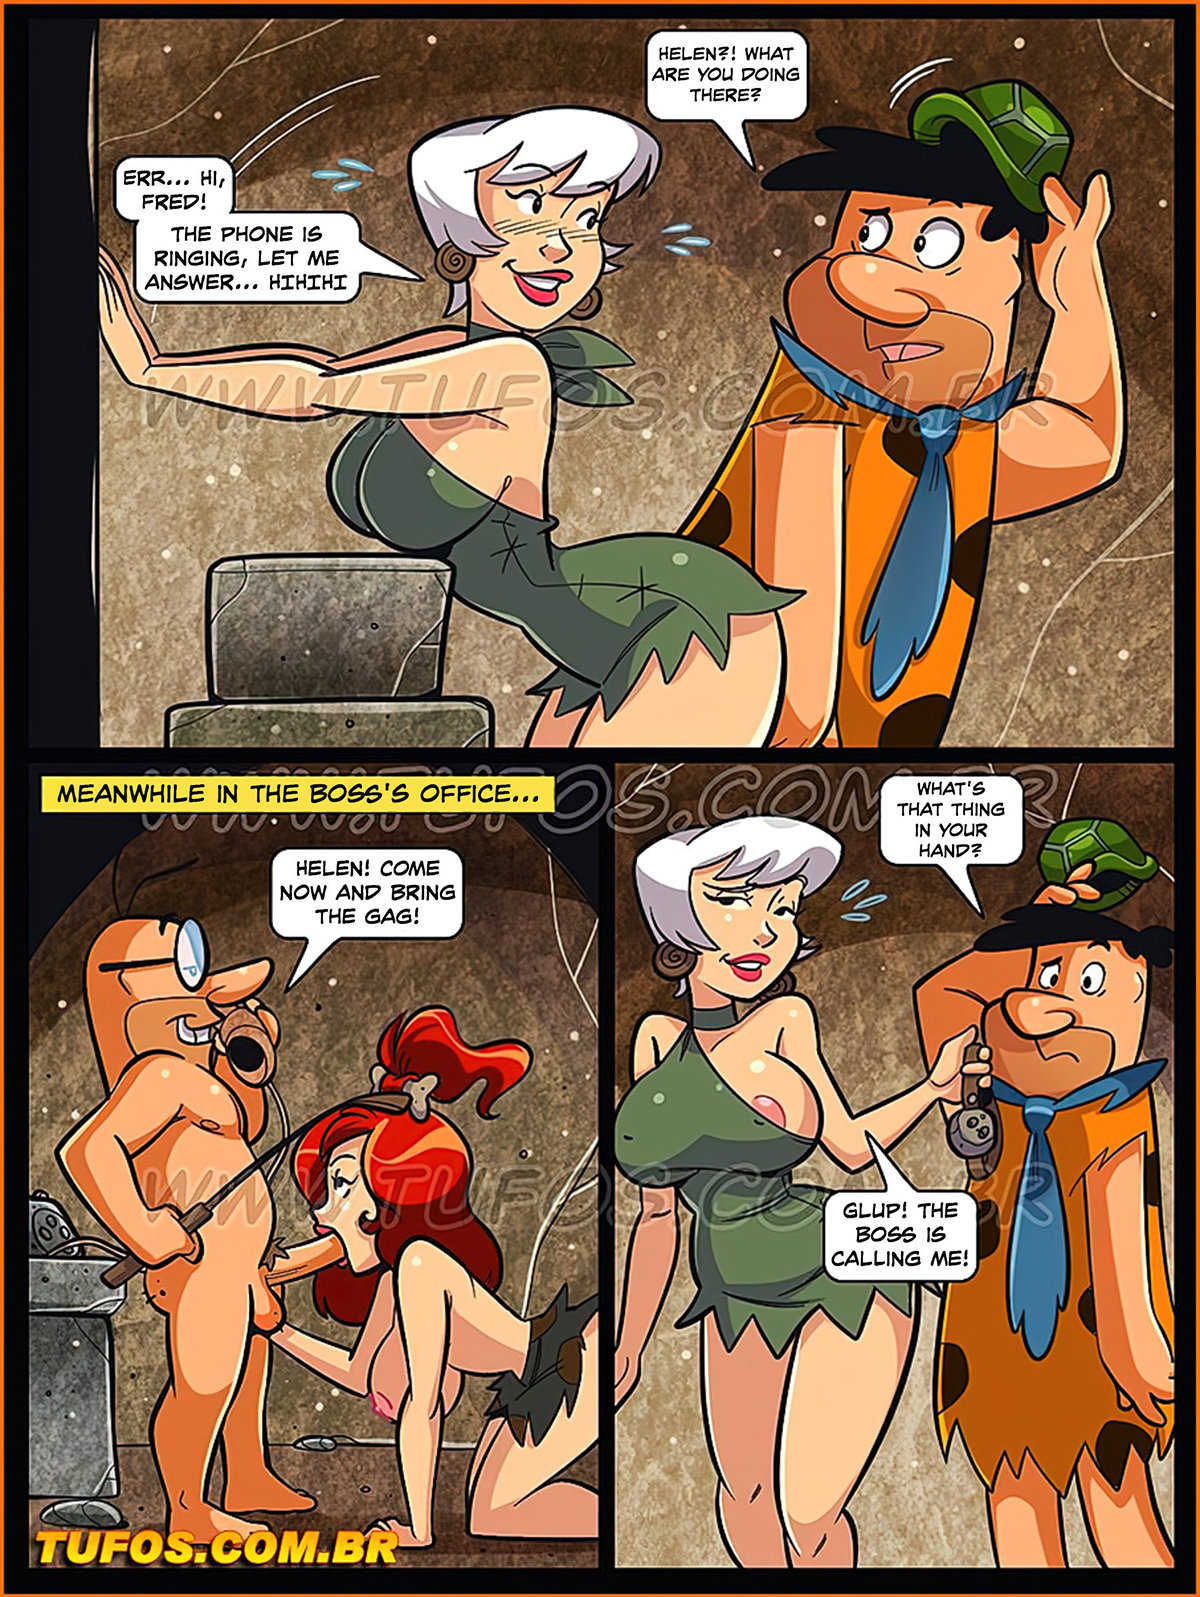 010 7 - The Flintstones 11. Saving The Job With The Pussy.